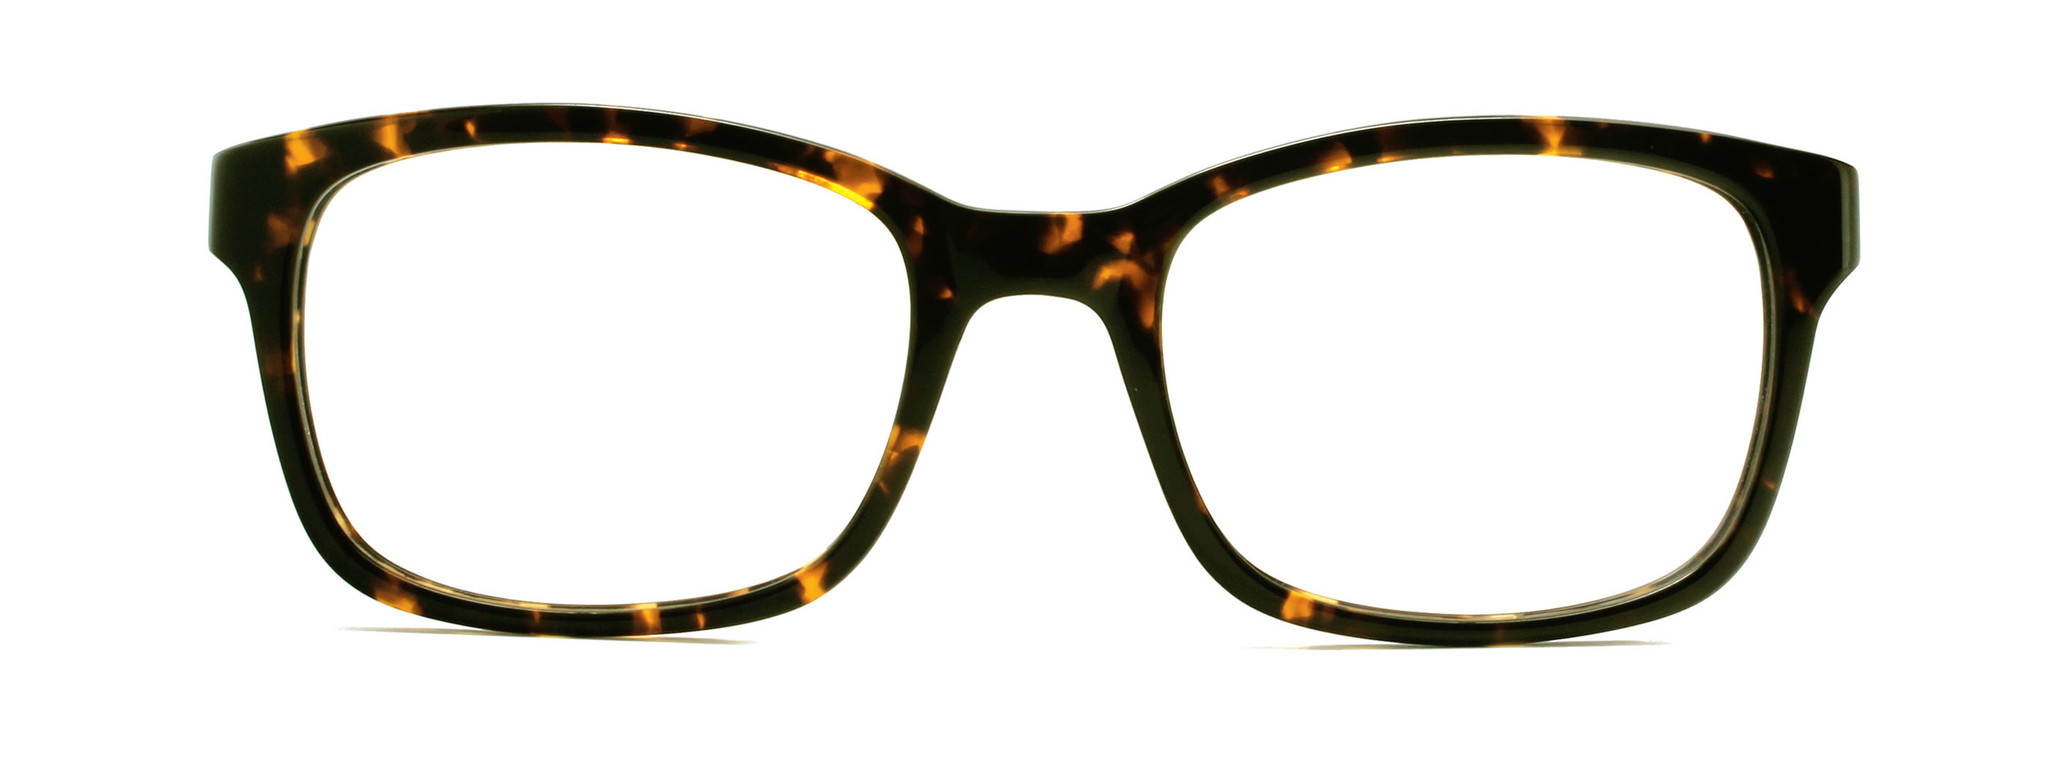 Glasses for USD165 Focus by Discerning Eye Iowa City, IA